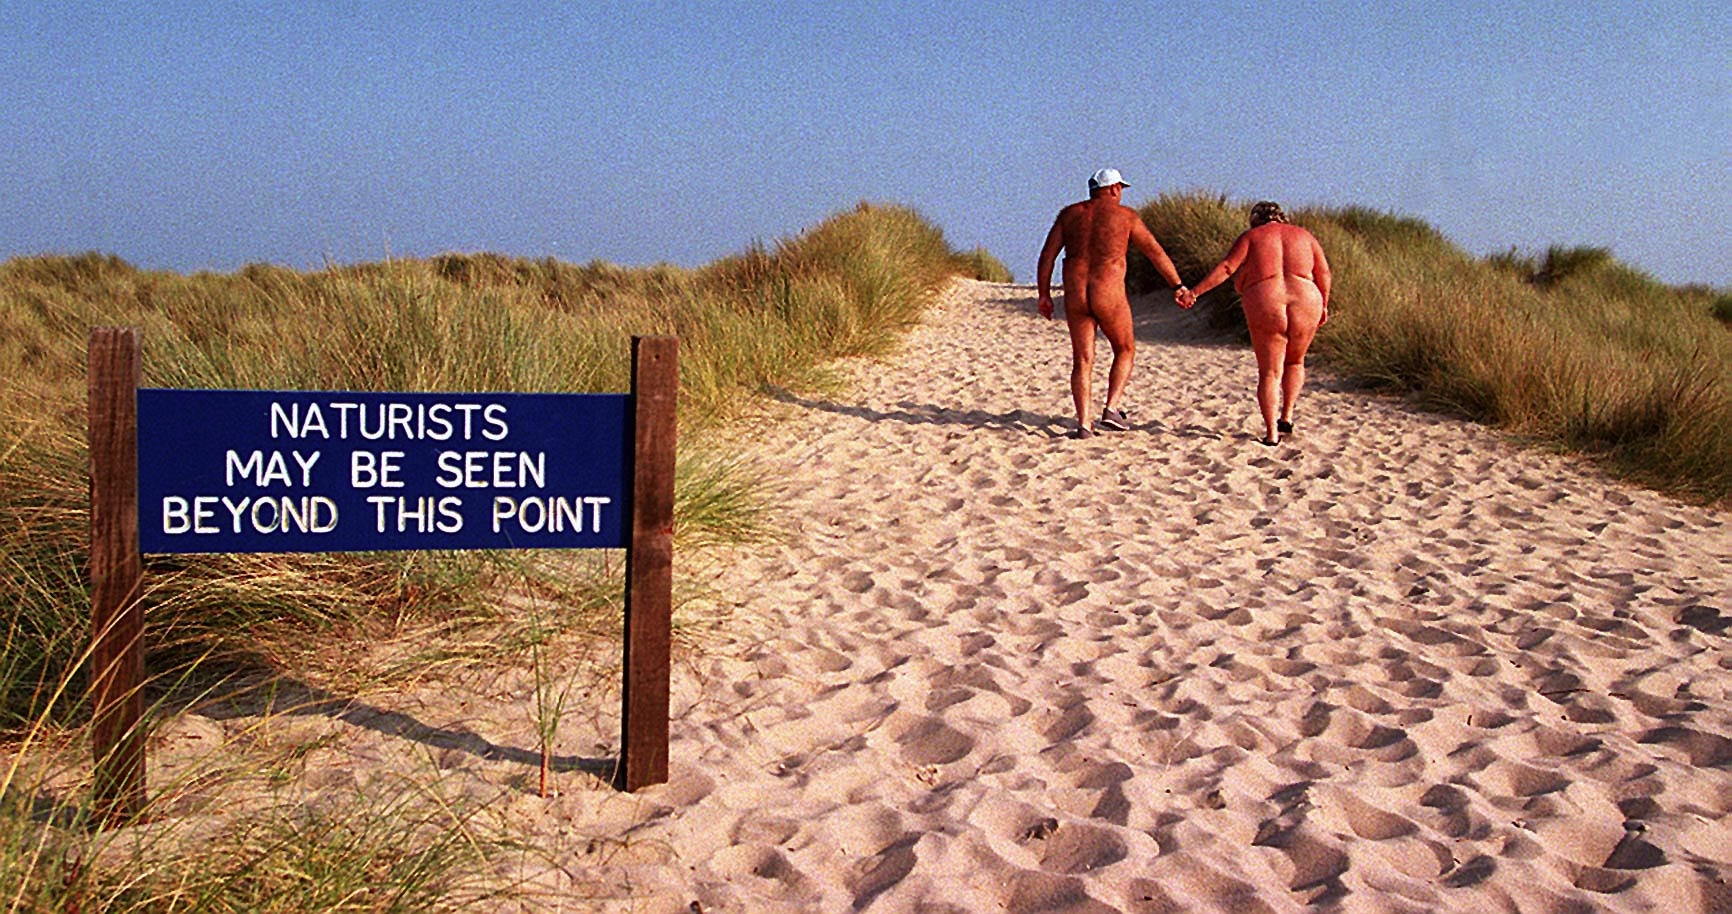 Dorset beach named as one of world's top nudist destinations